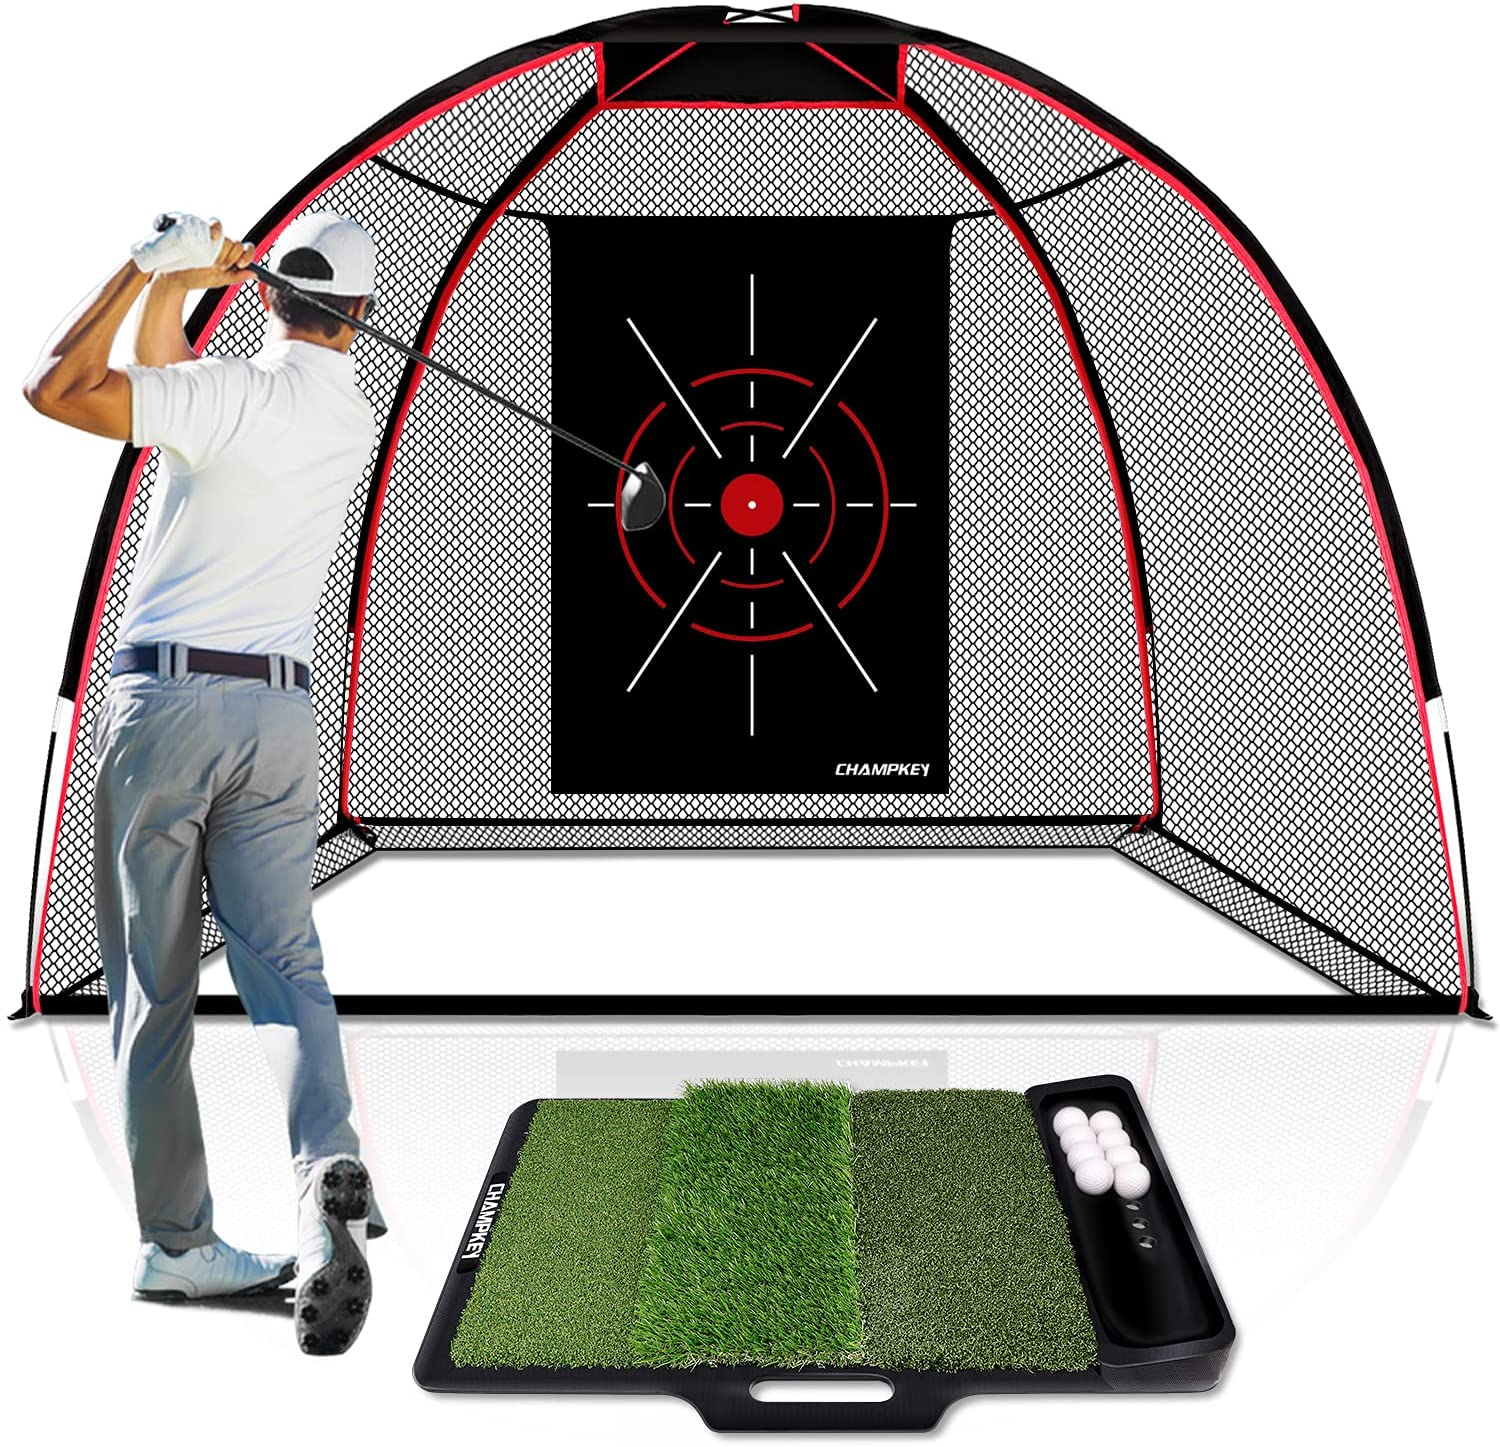 CHAMPKEY Upgraded TEPRO 10' x 7' Golf Hitting Net   5 Ply-Knotless Netting with Impact Target Golf Practice Net Ideal for Indoor and Outdoor Training : Sports & Outdoors